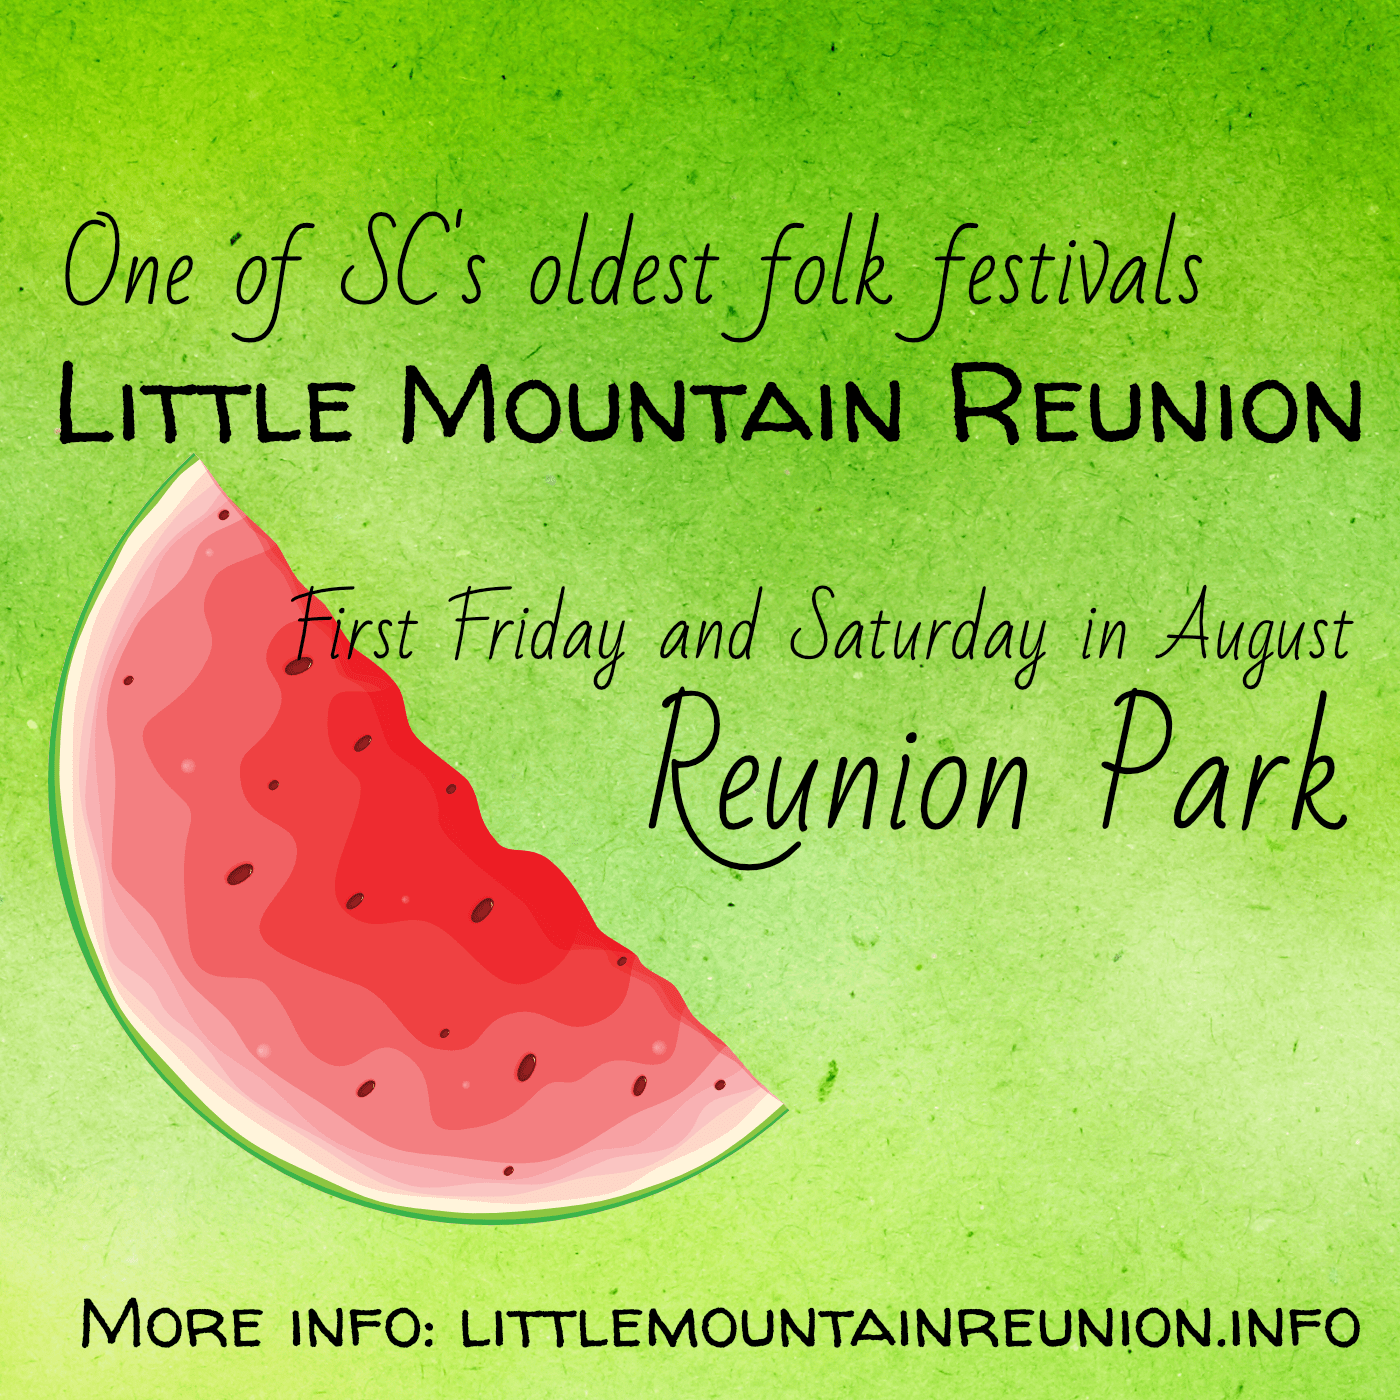 Little Mountain Reunion ad